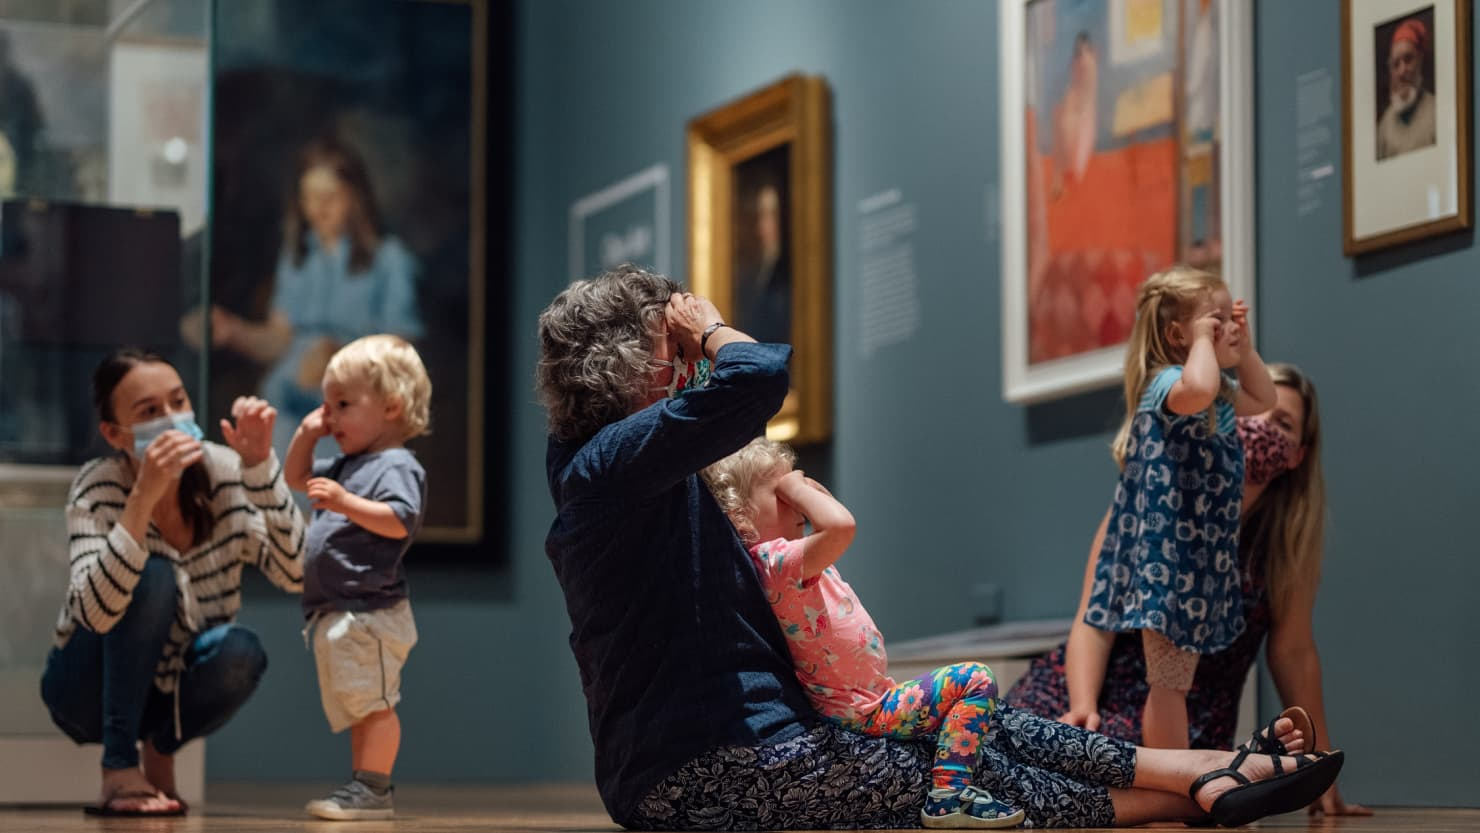 Families making binoculars with their hands to look at paintings